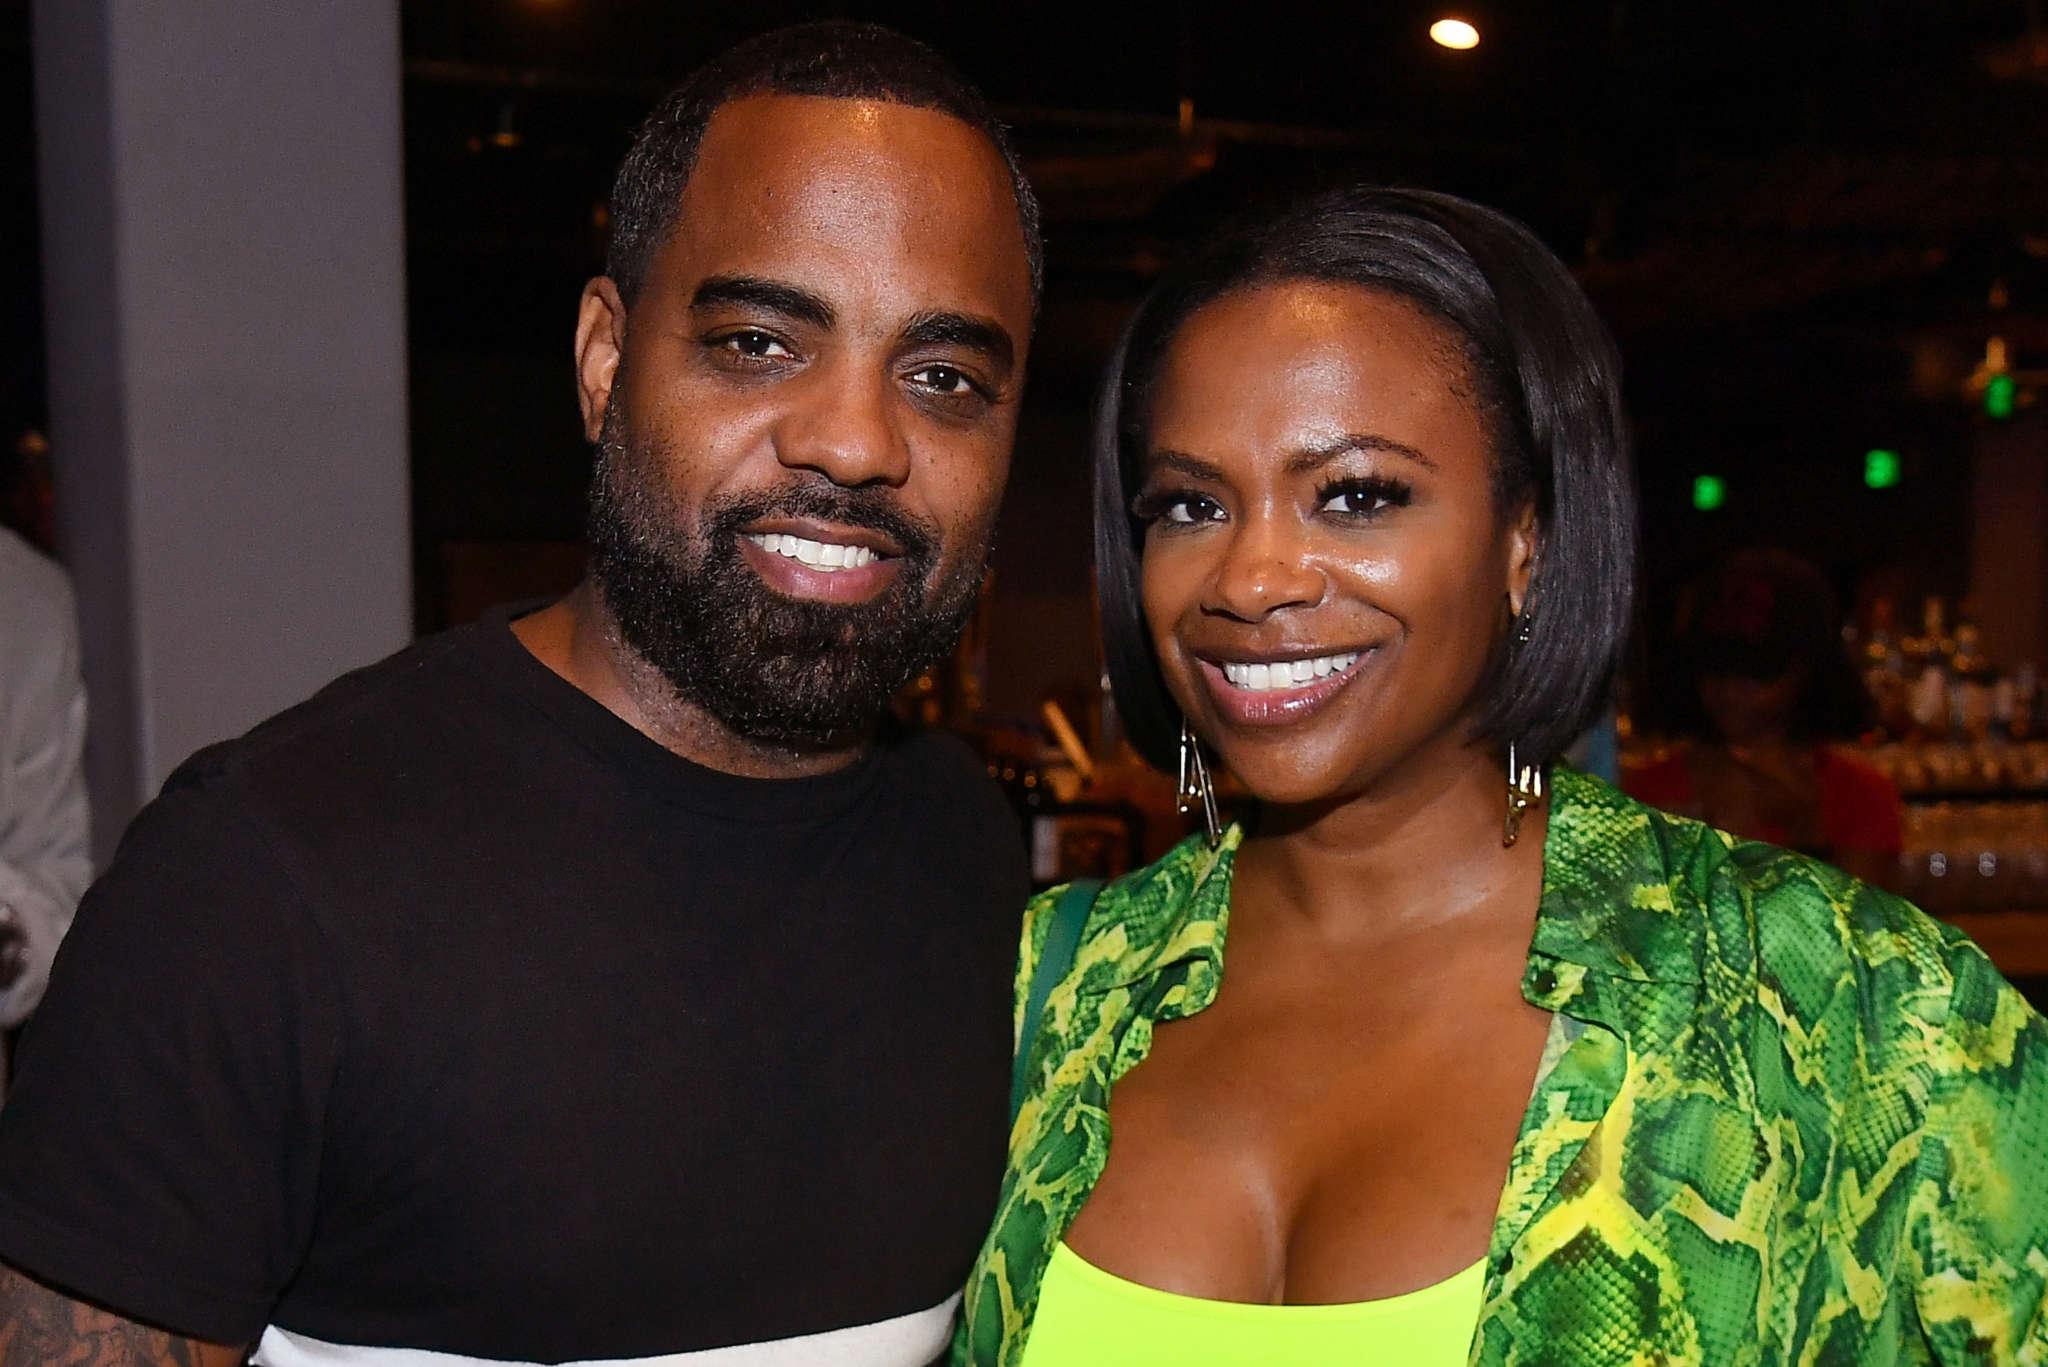 Kandi Burruss Looks Amazing At People's Choice - See Her Photos